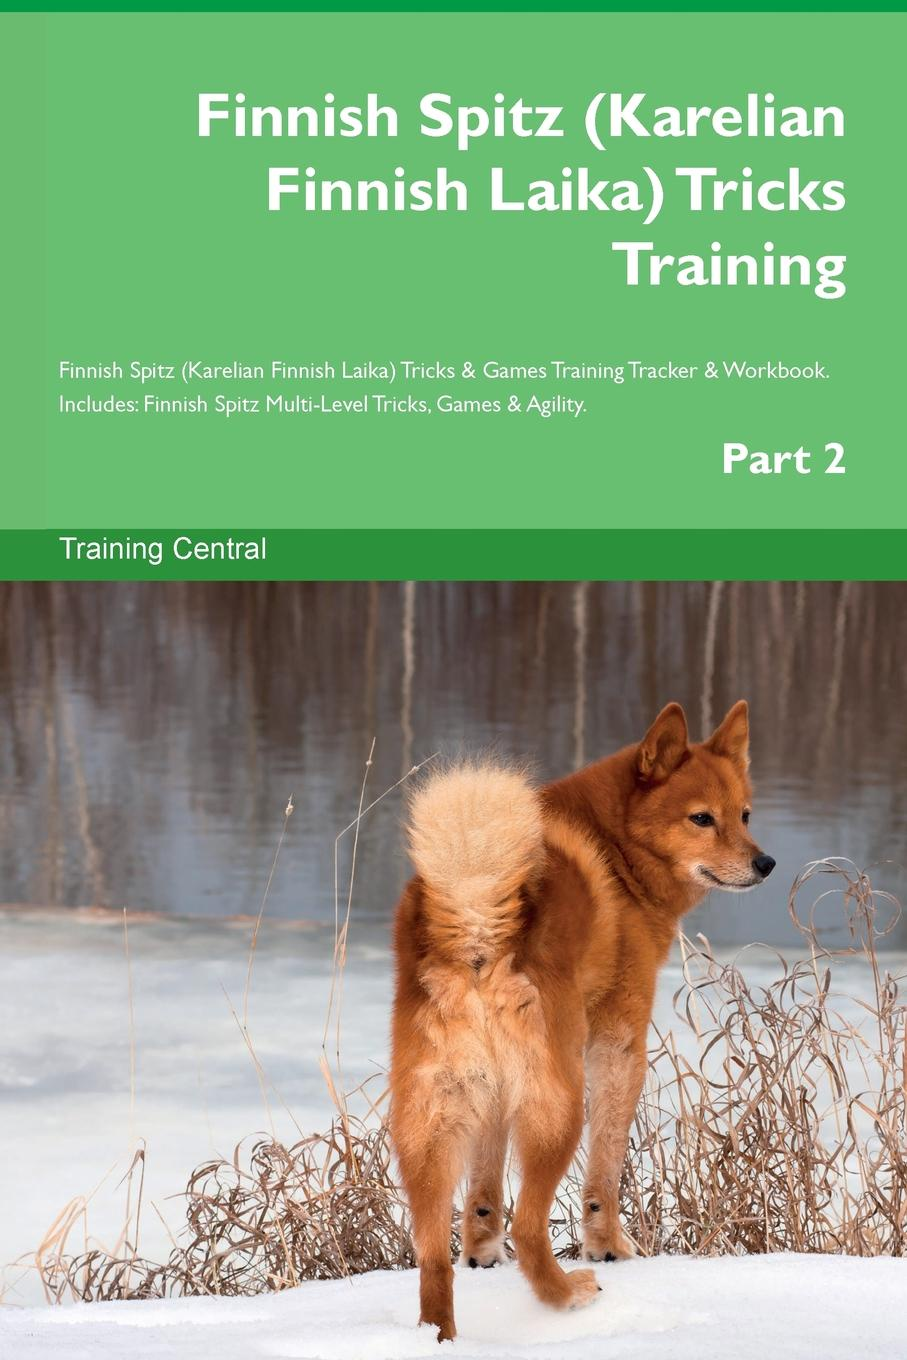 Training Central Finnish Spitz (Karelian Finnish Laika) Tricks Training Finnish Spitz (Karelian Finnish Laika) Tricks & Games Training Tracker & Workbook. Includes. Finnish Spitz Multi-Level Tricks, Games & Agility. Part 2 henkikirjoitusta seka muuttamista seurakunnasta toiseen ja papintodistuksia koskevat asetukset finnish edition